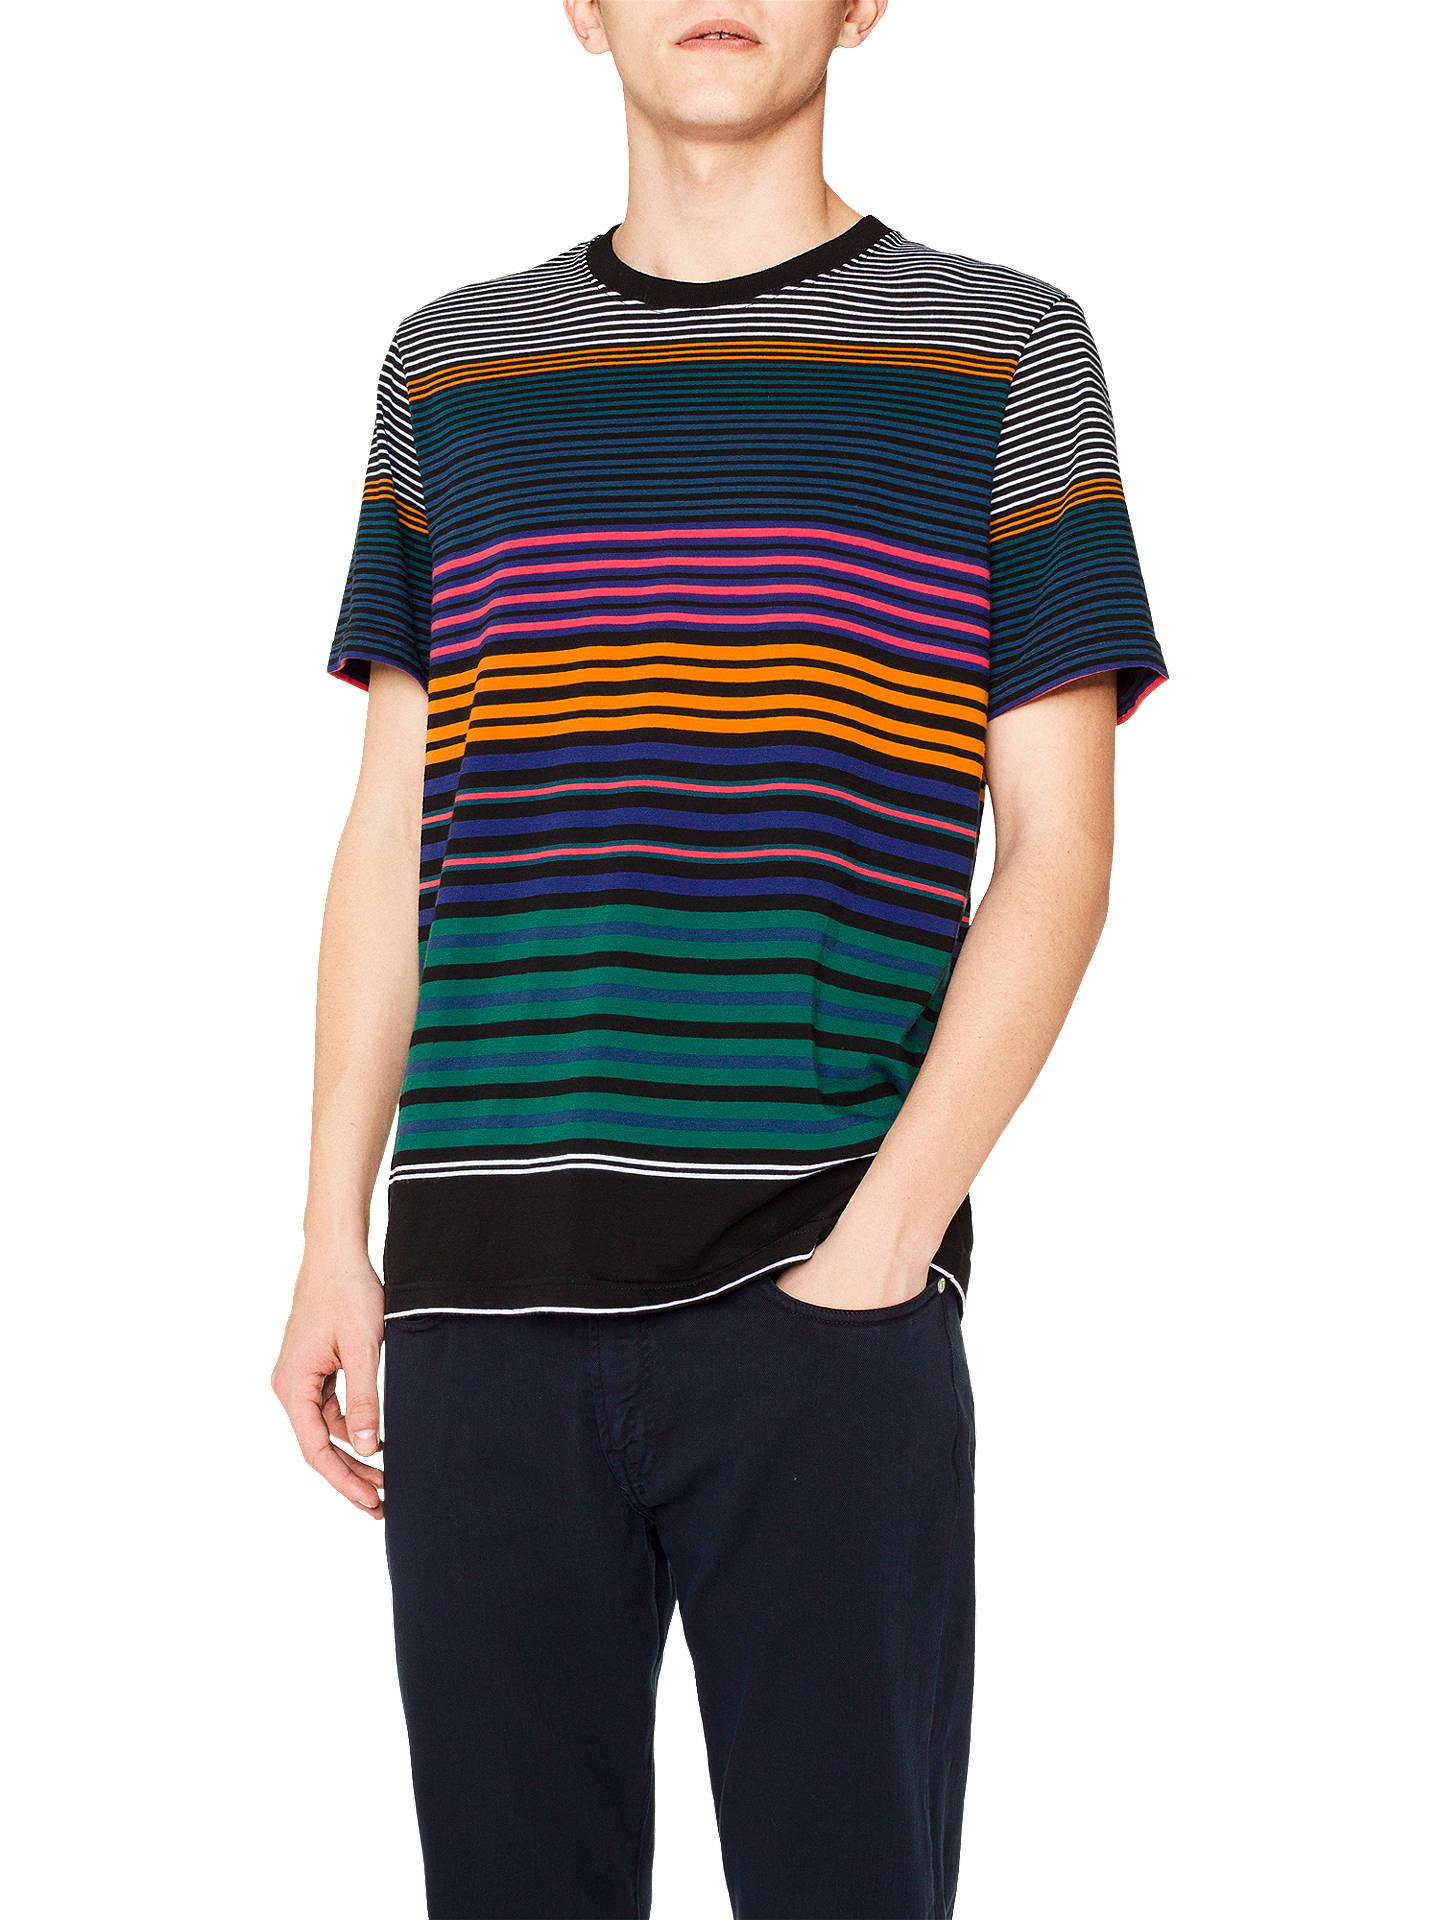 BuyPS Paul Smith Short Sleeve Stripe T-Shirt, Multi, XL Online at johnlewis.com